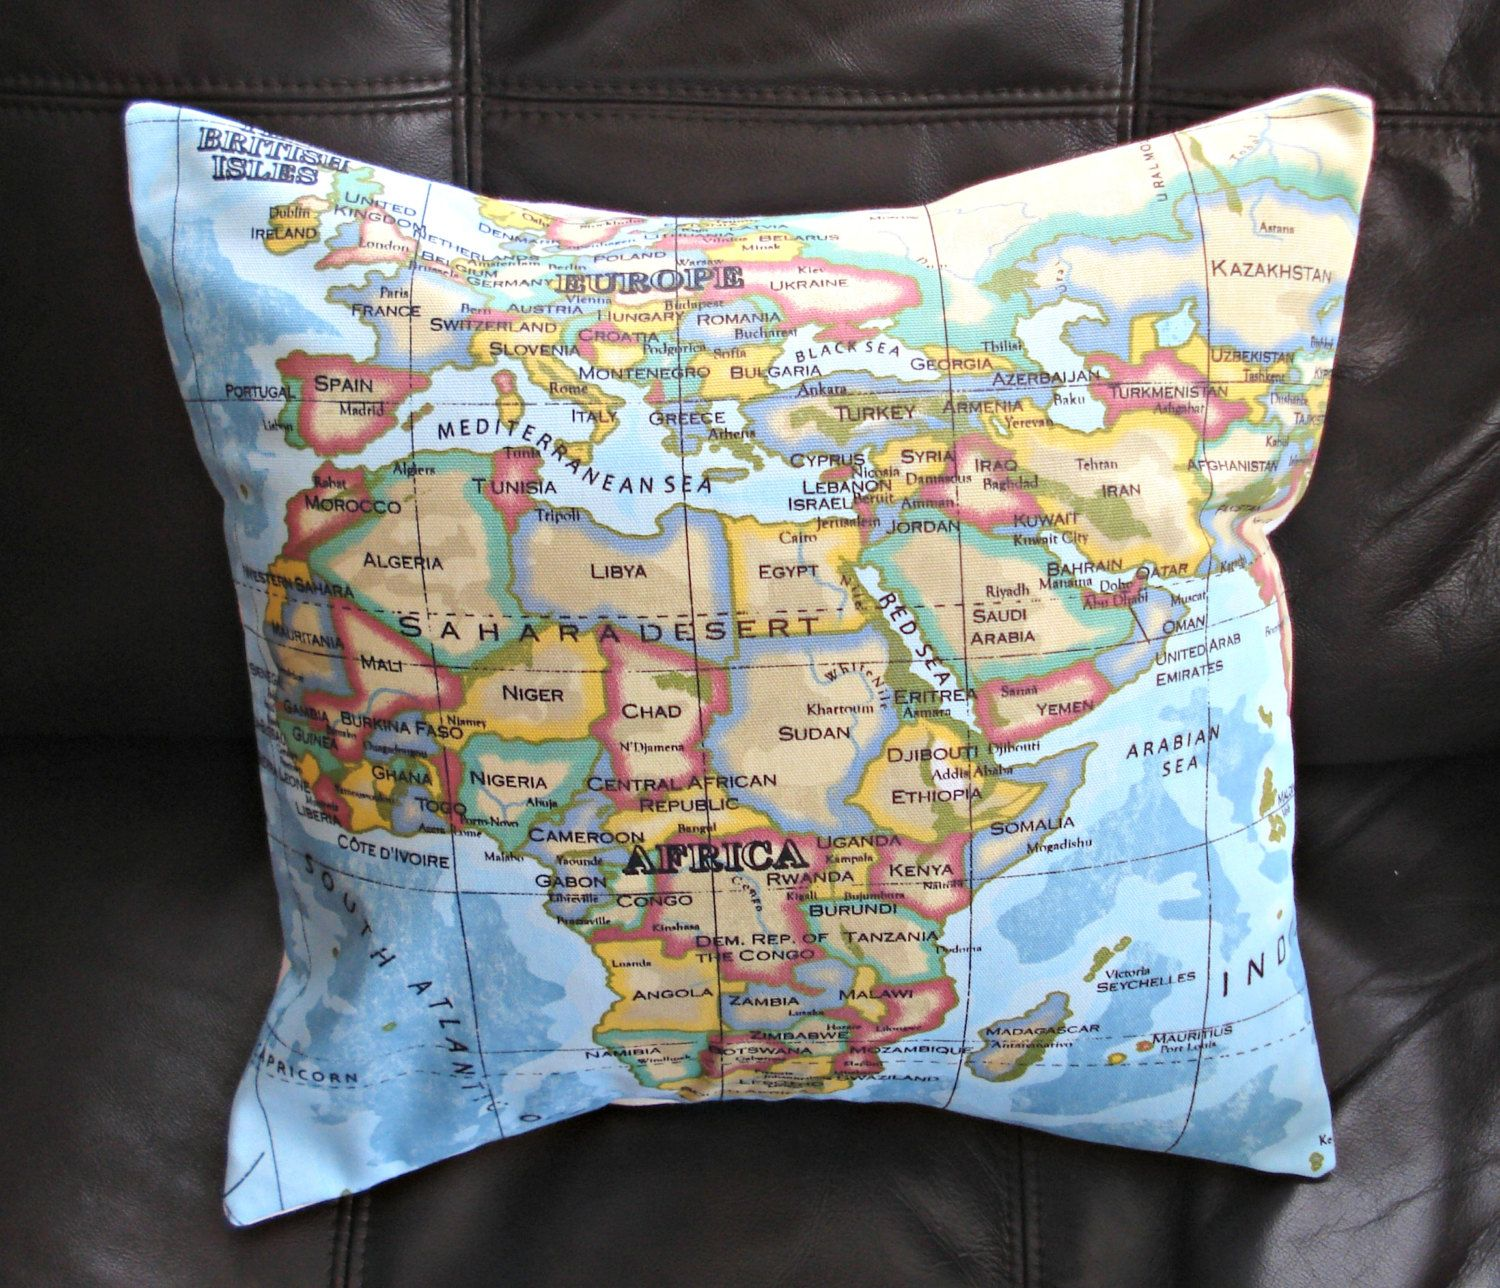 Pillow world map atlas 16 inch uk ireland africa madagascar pillow world map atlas 16 inch uk ireland africa madagascar seychelles egypt india tibet europe united kingdon italy france spain greece gumiabroncs Choice Image